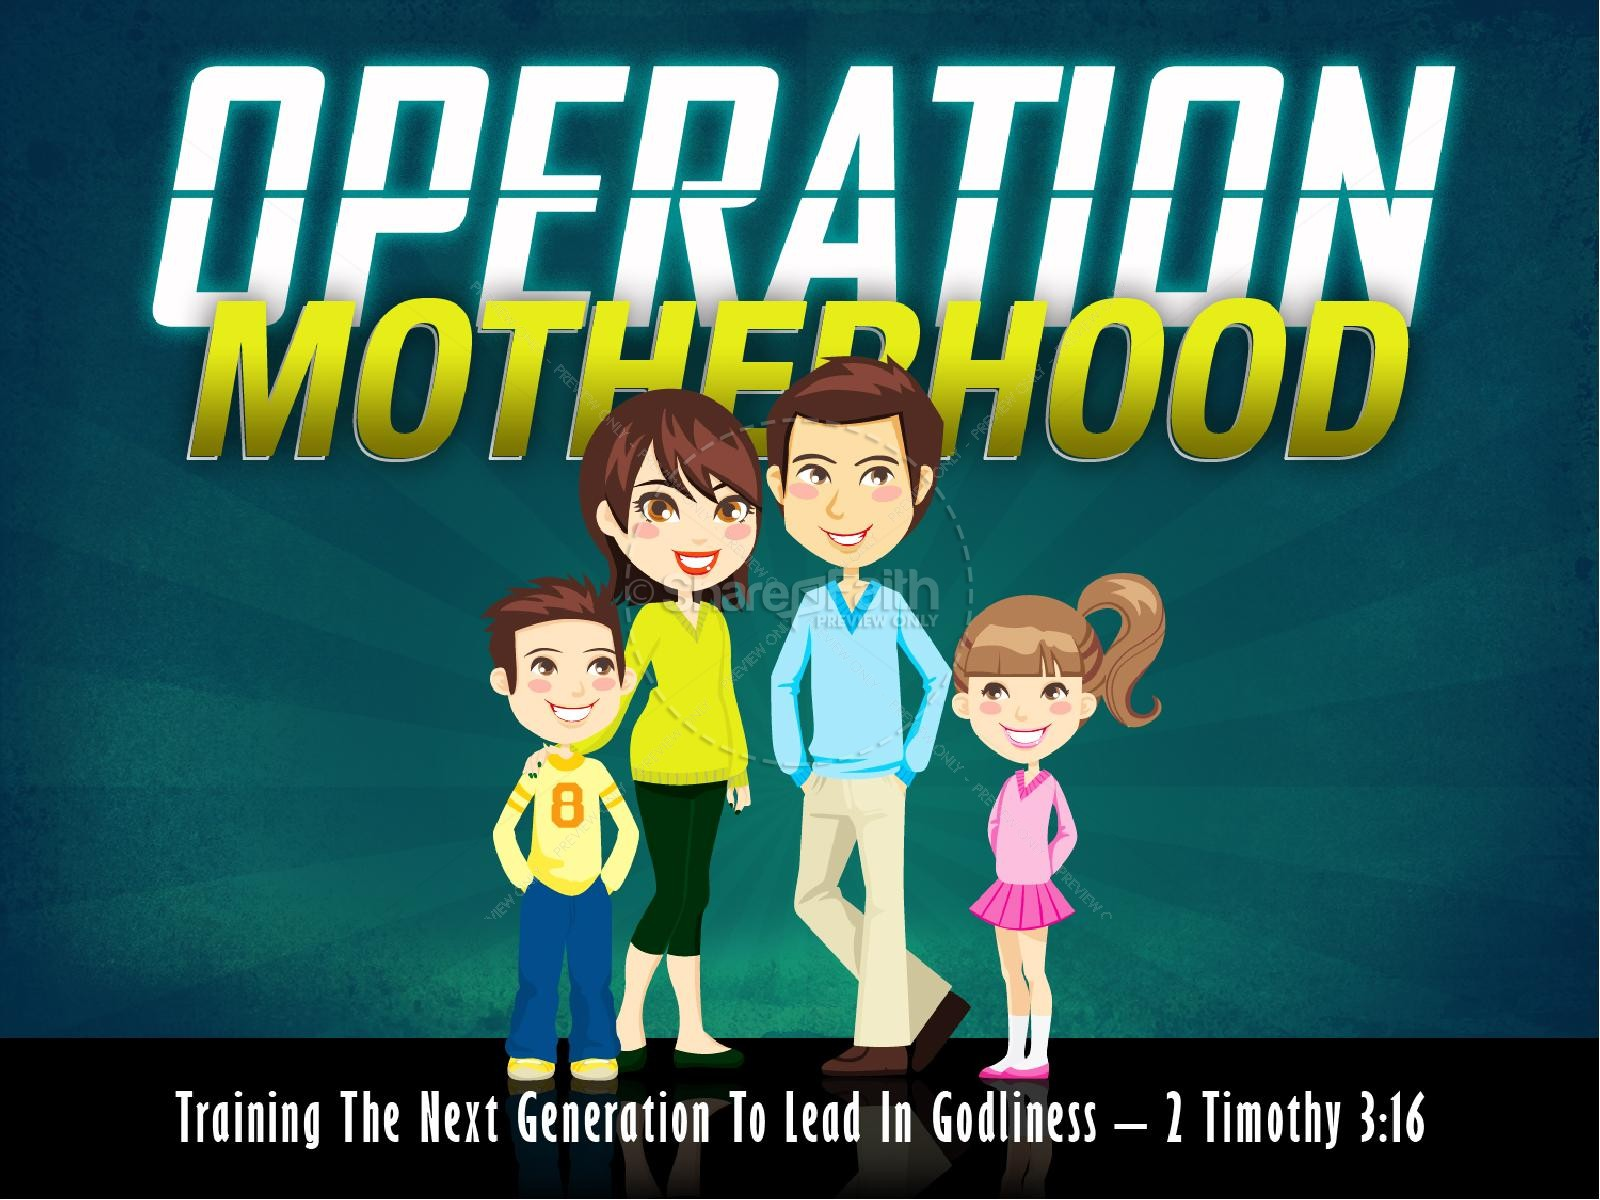 Operation Motherhood PowerPoint Template